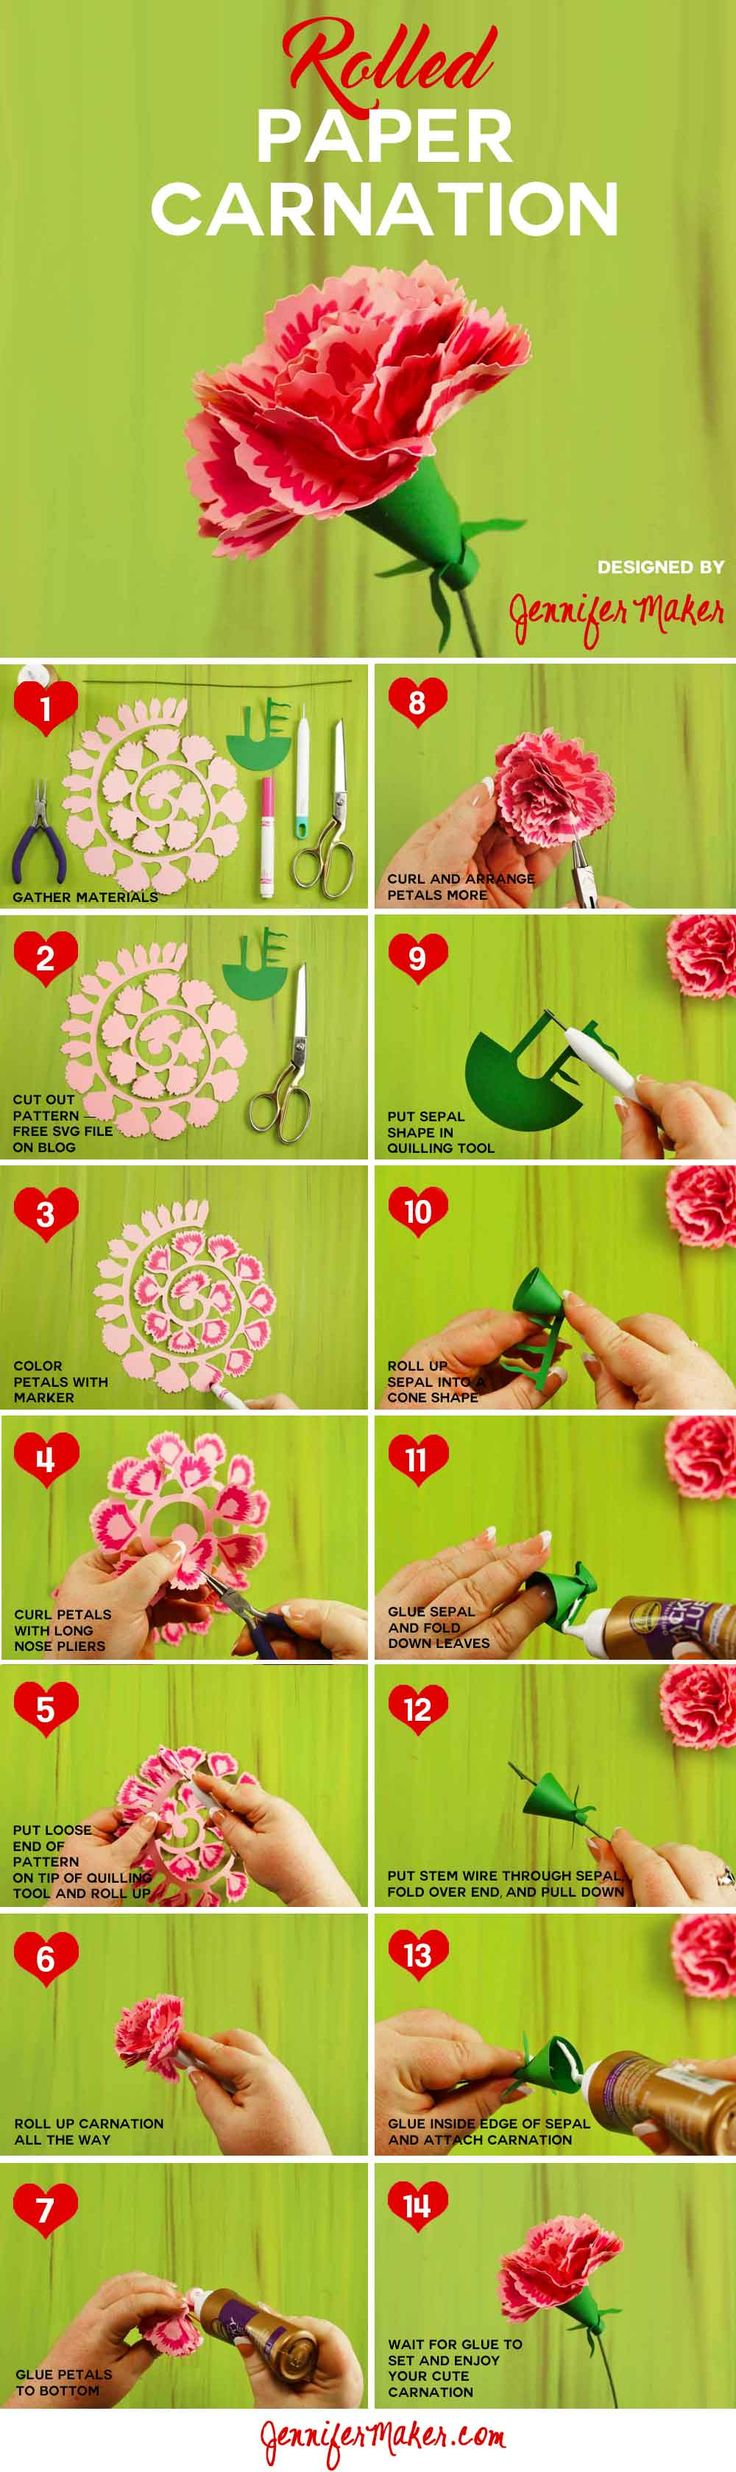 The 14 Best Images About Making Flowers On Pinterest Crafting Tim